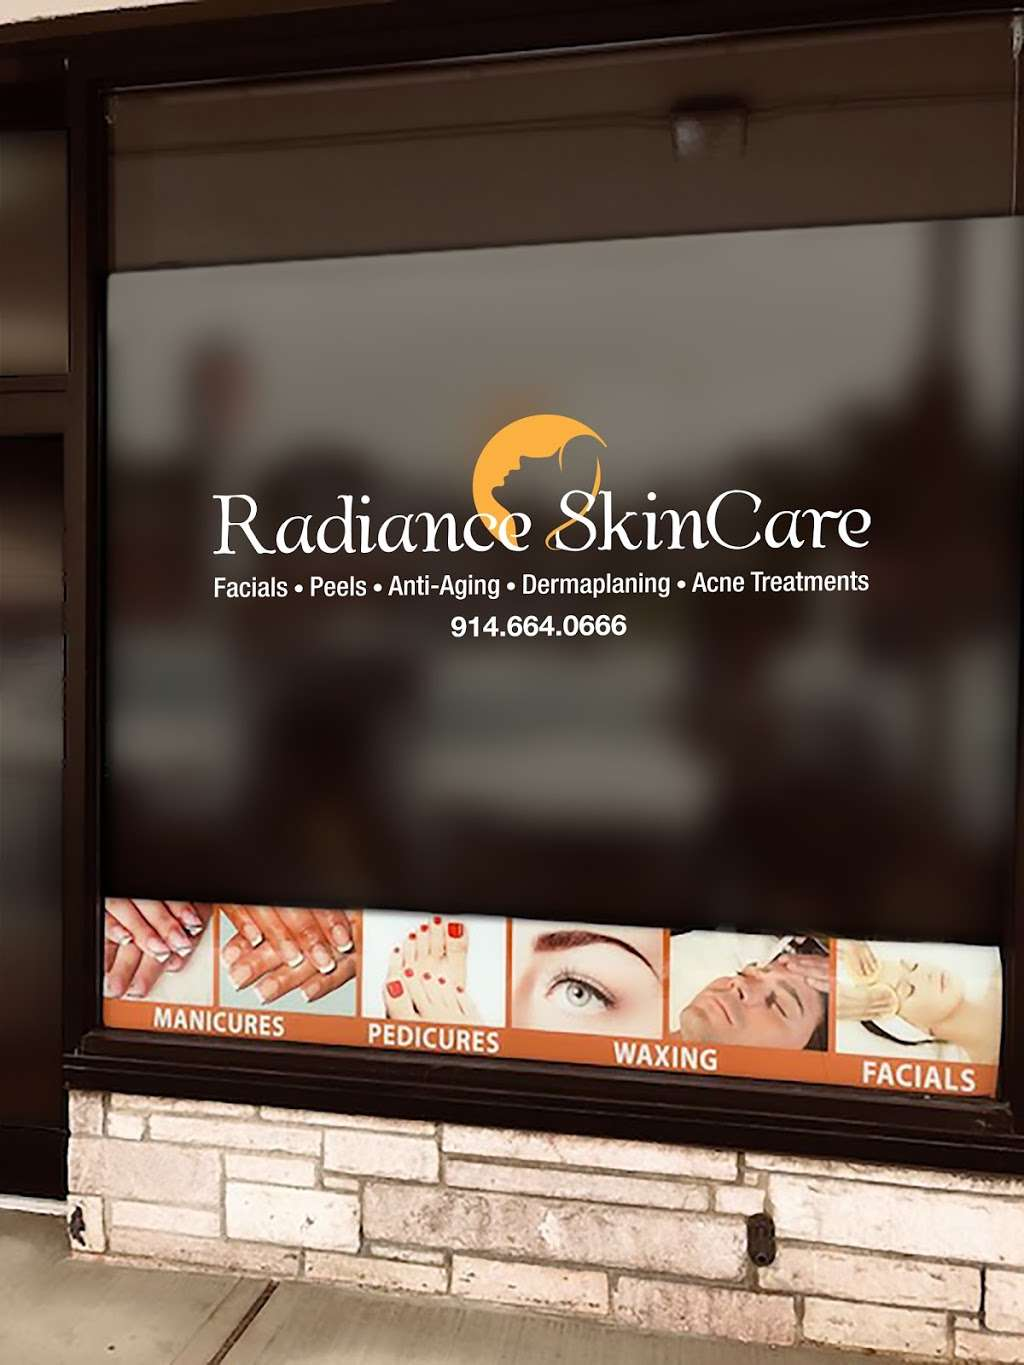 Radiance SkinCare - spa  | Photo 8 of 10 | Address: 850 Bronx River Rd, Bronxville, NY 10708, USA | Phone: (914) 664-0666